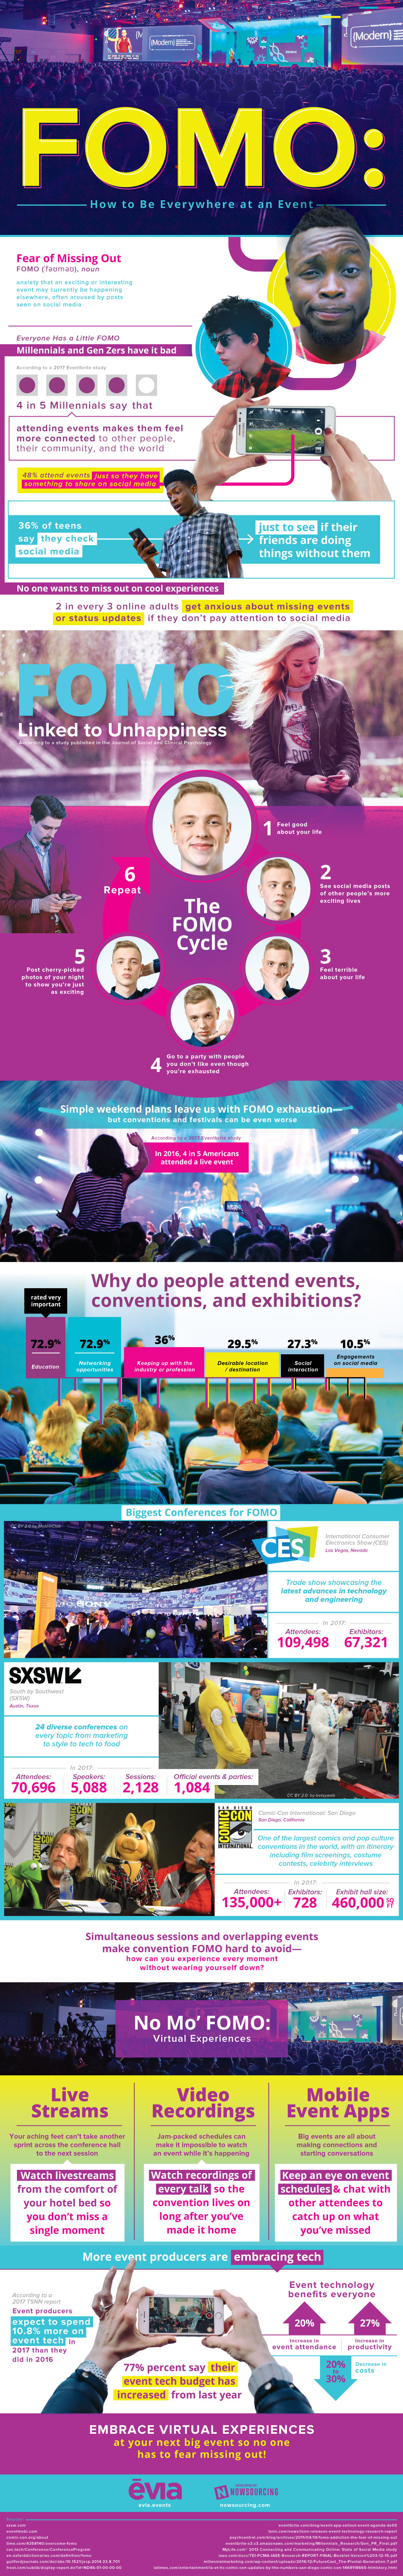 How to Plan FOMO-less Events - Infographic